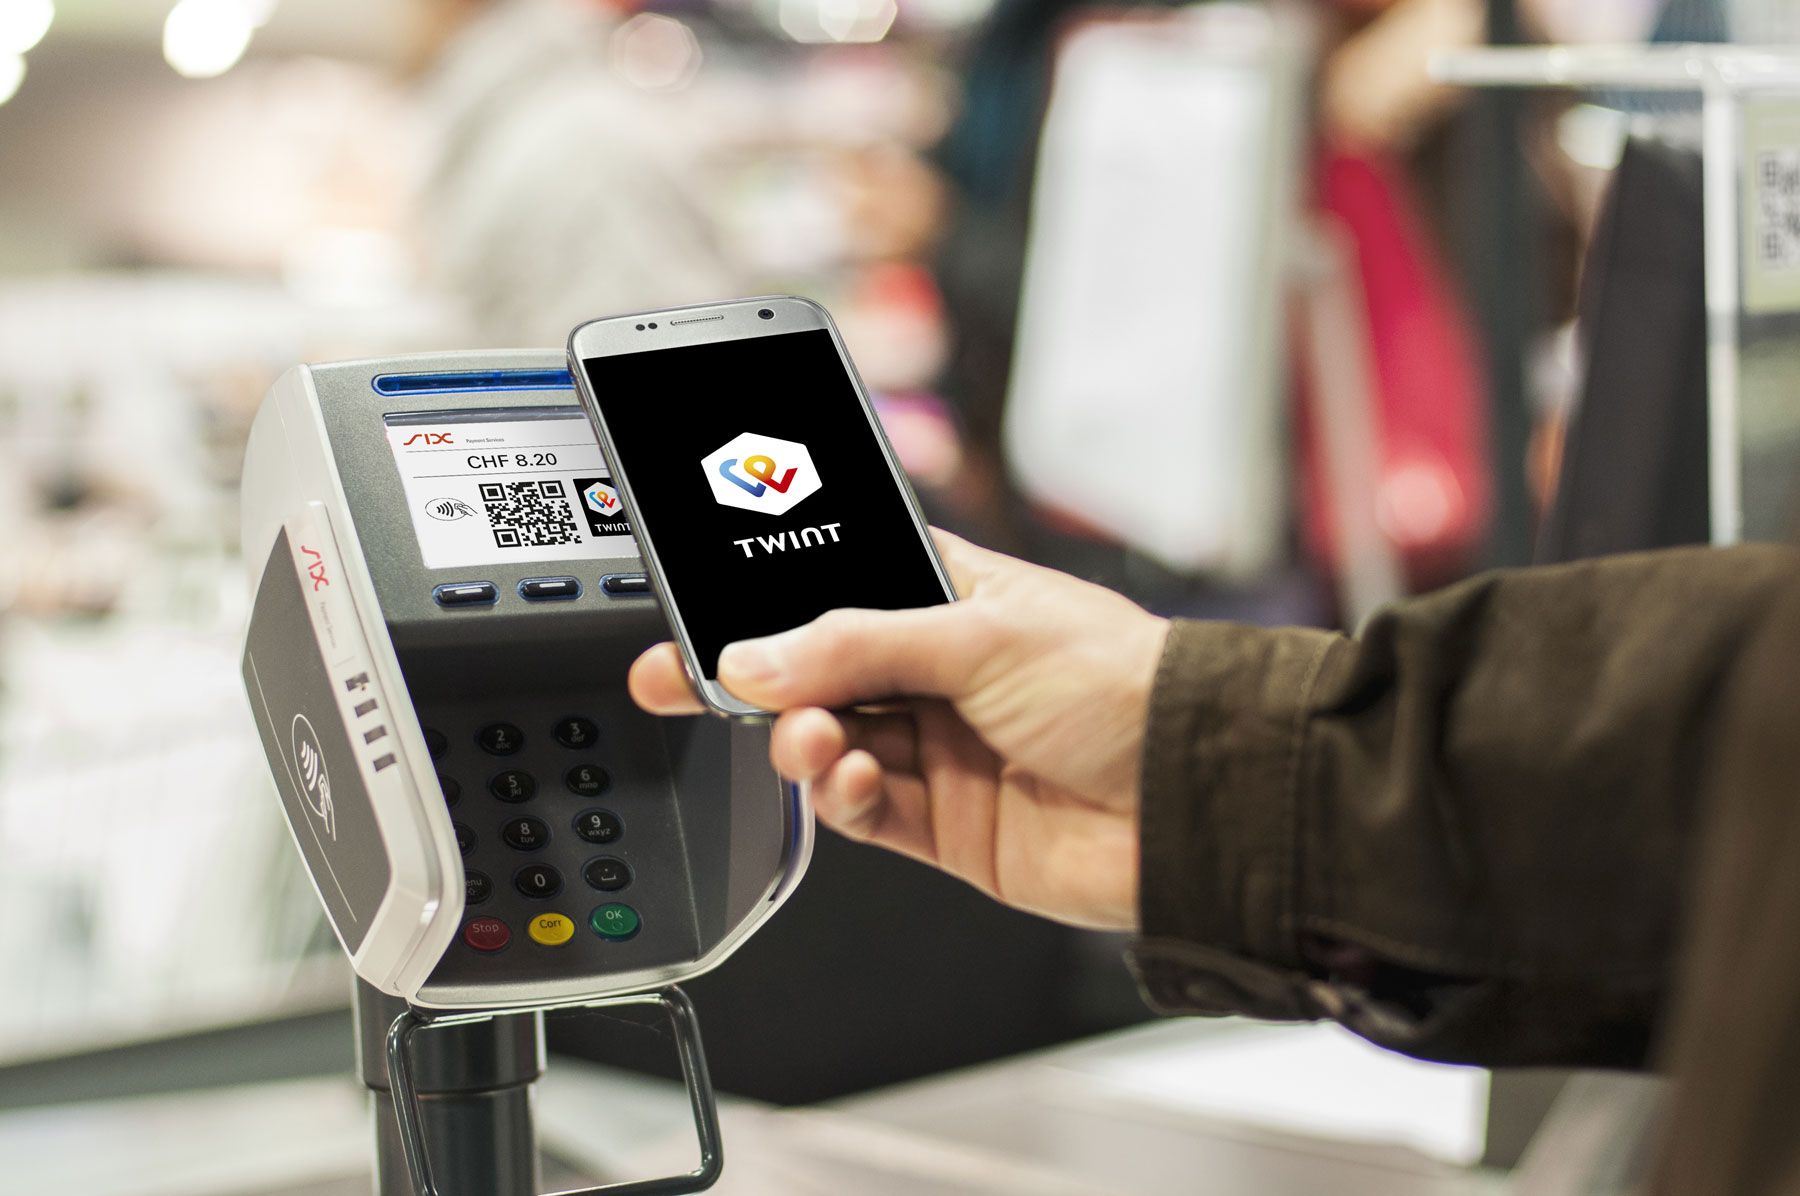 Twint Zwitserland Apple Pay concurrent